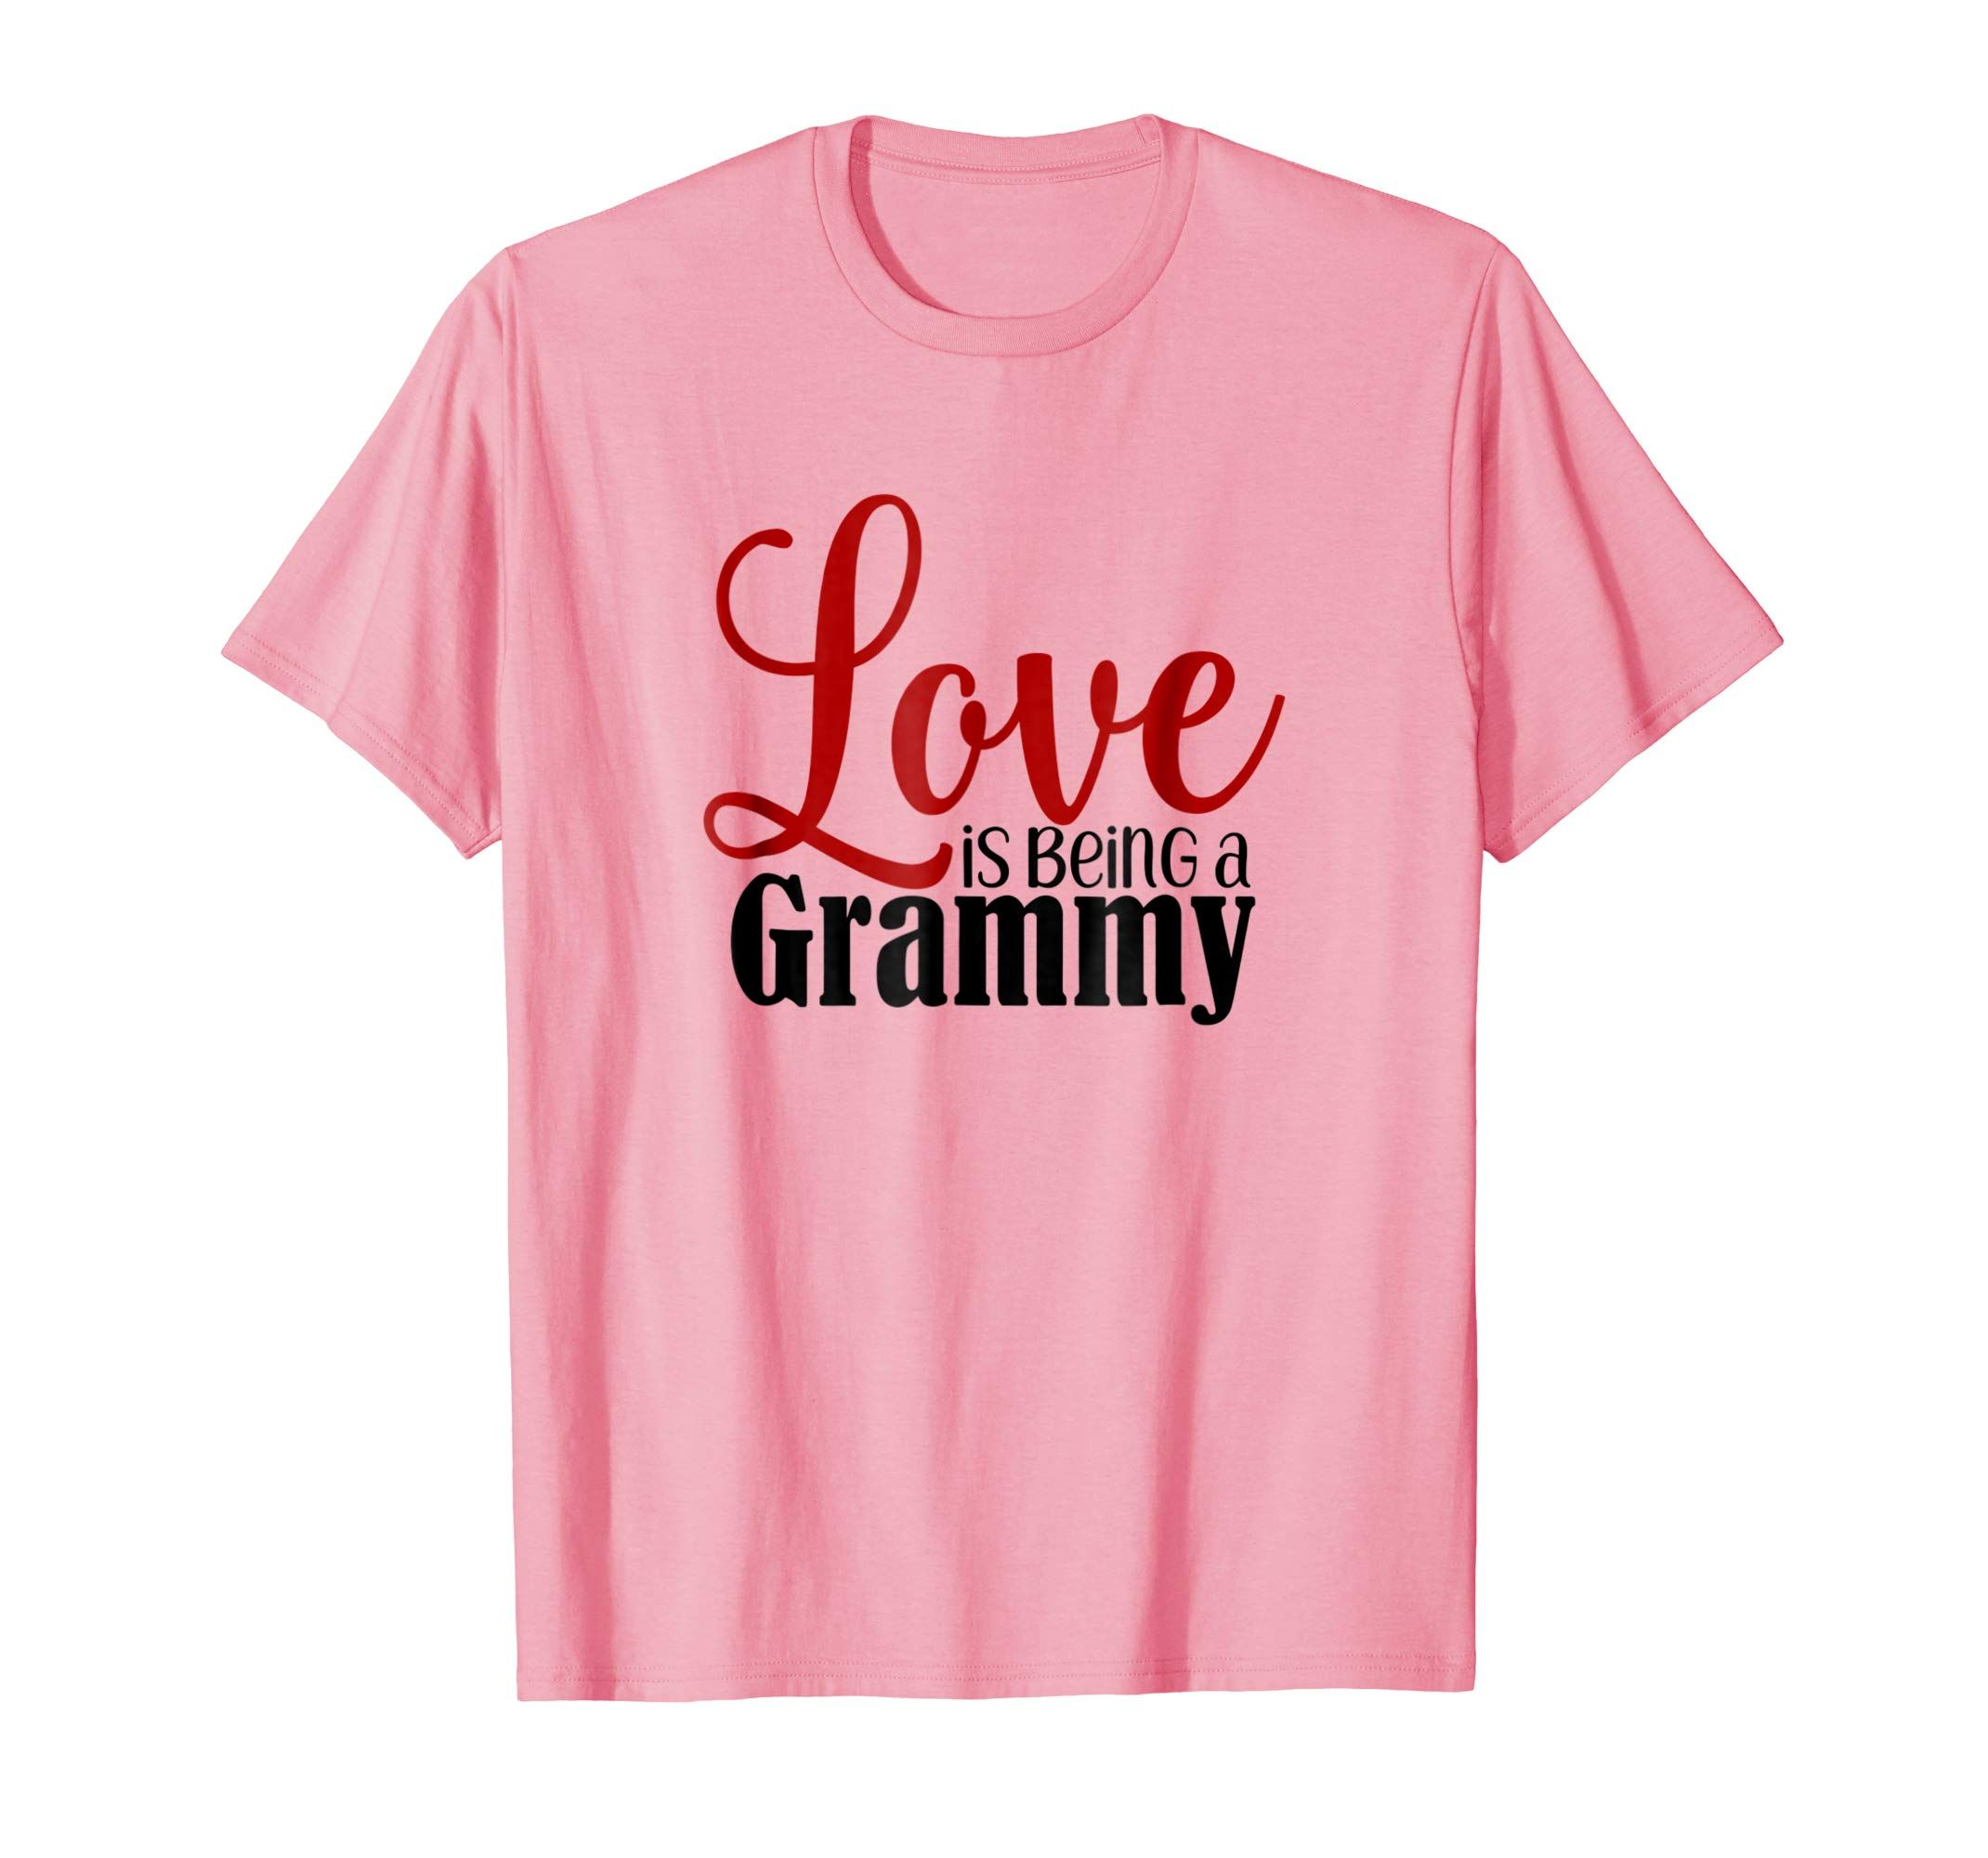 2642bdc47a Love Is Being A Grammy T Shirt Best Grandma Tshirt ~Amazon Prime ...